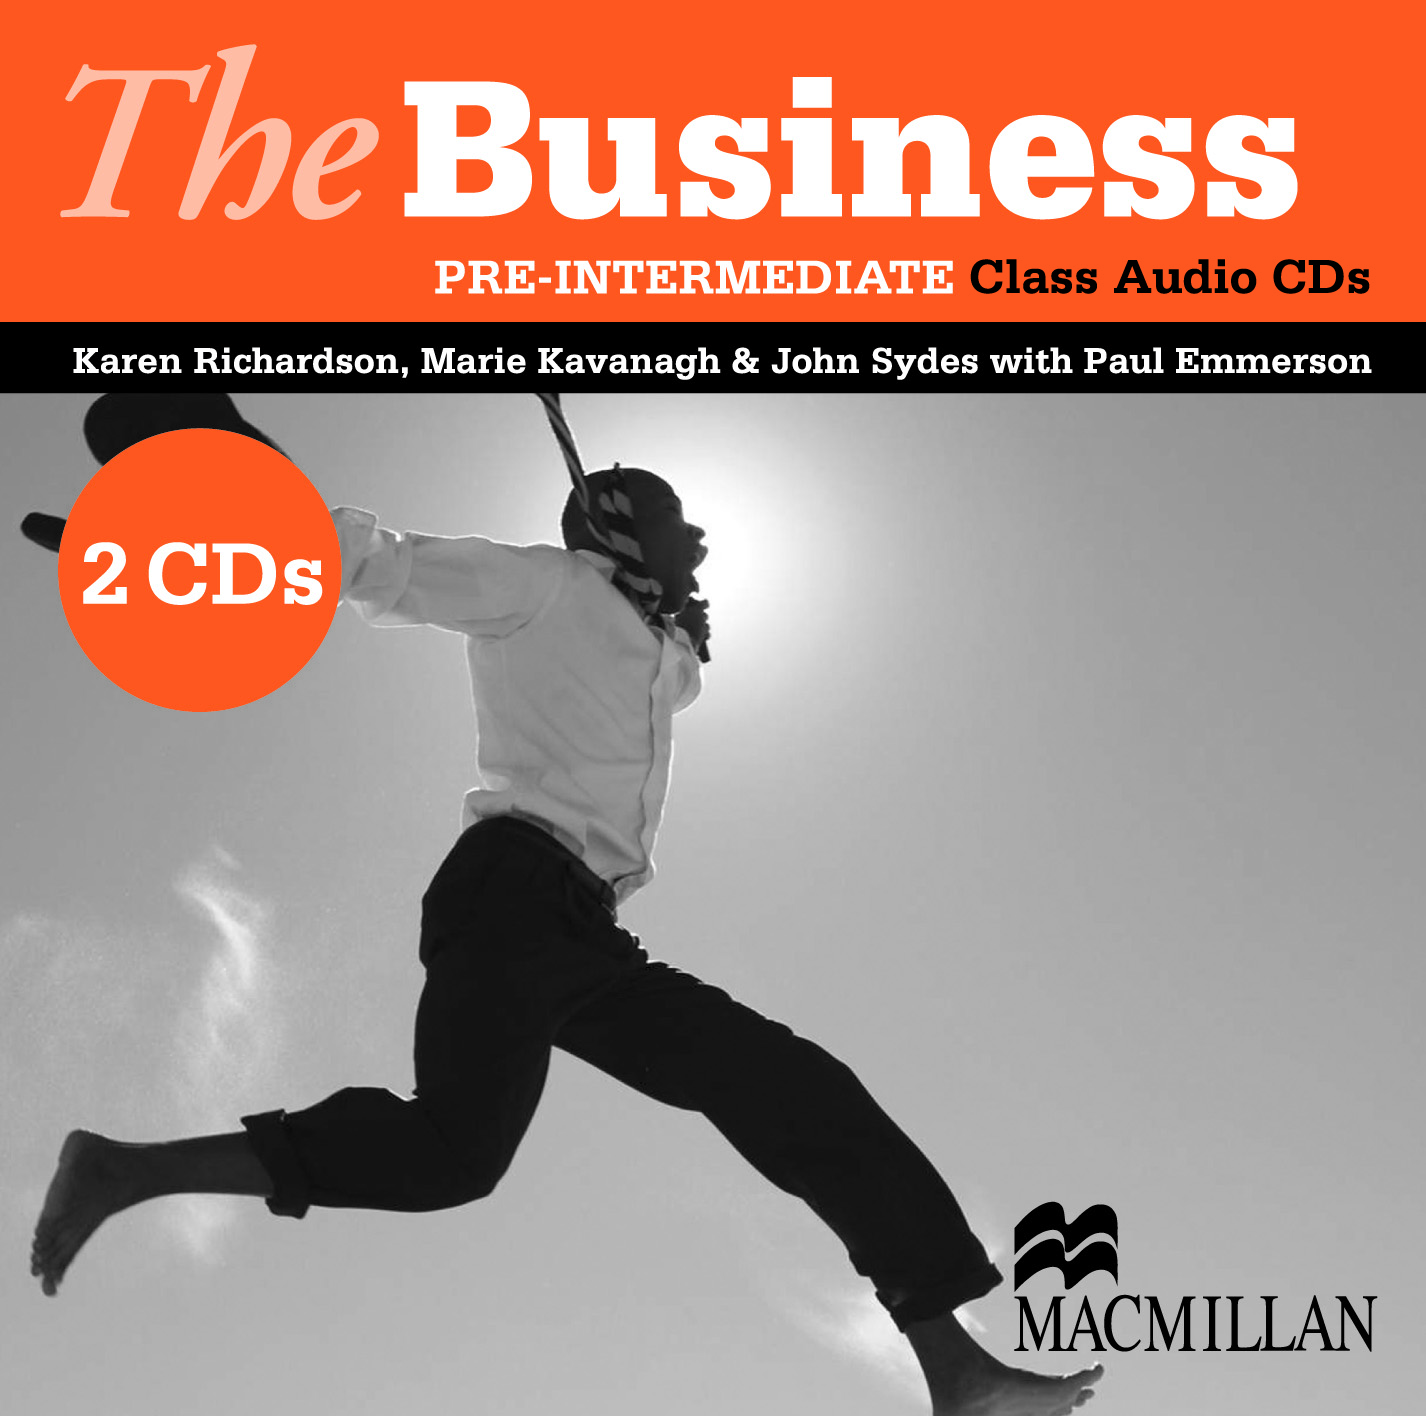 The Business Pre-Intermediate Class Audio CD